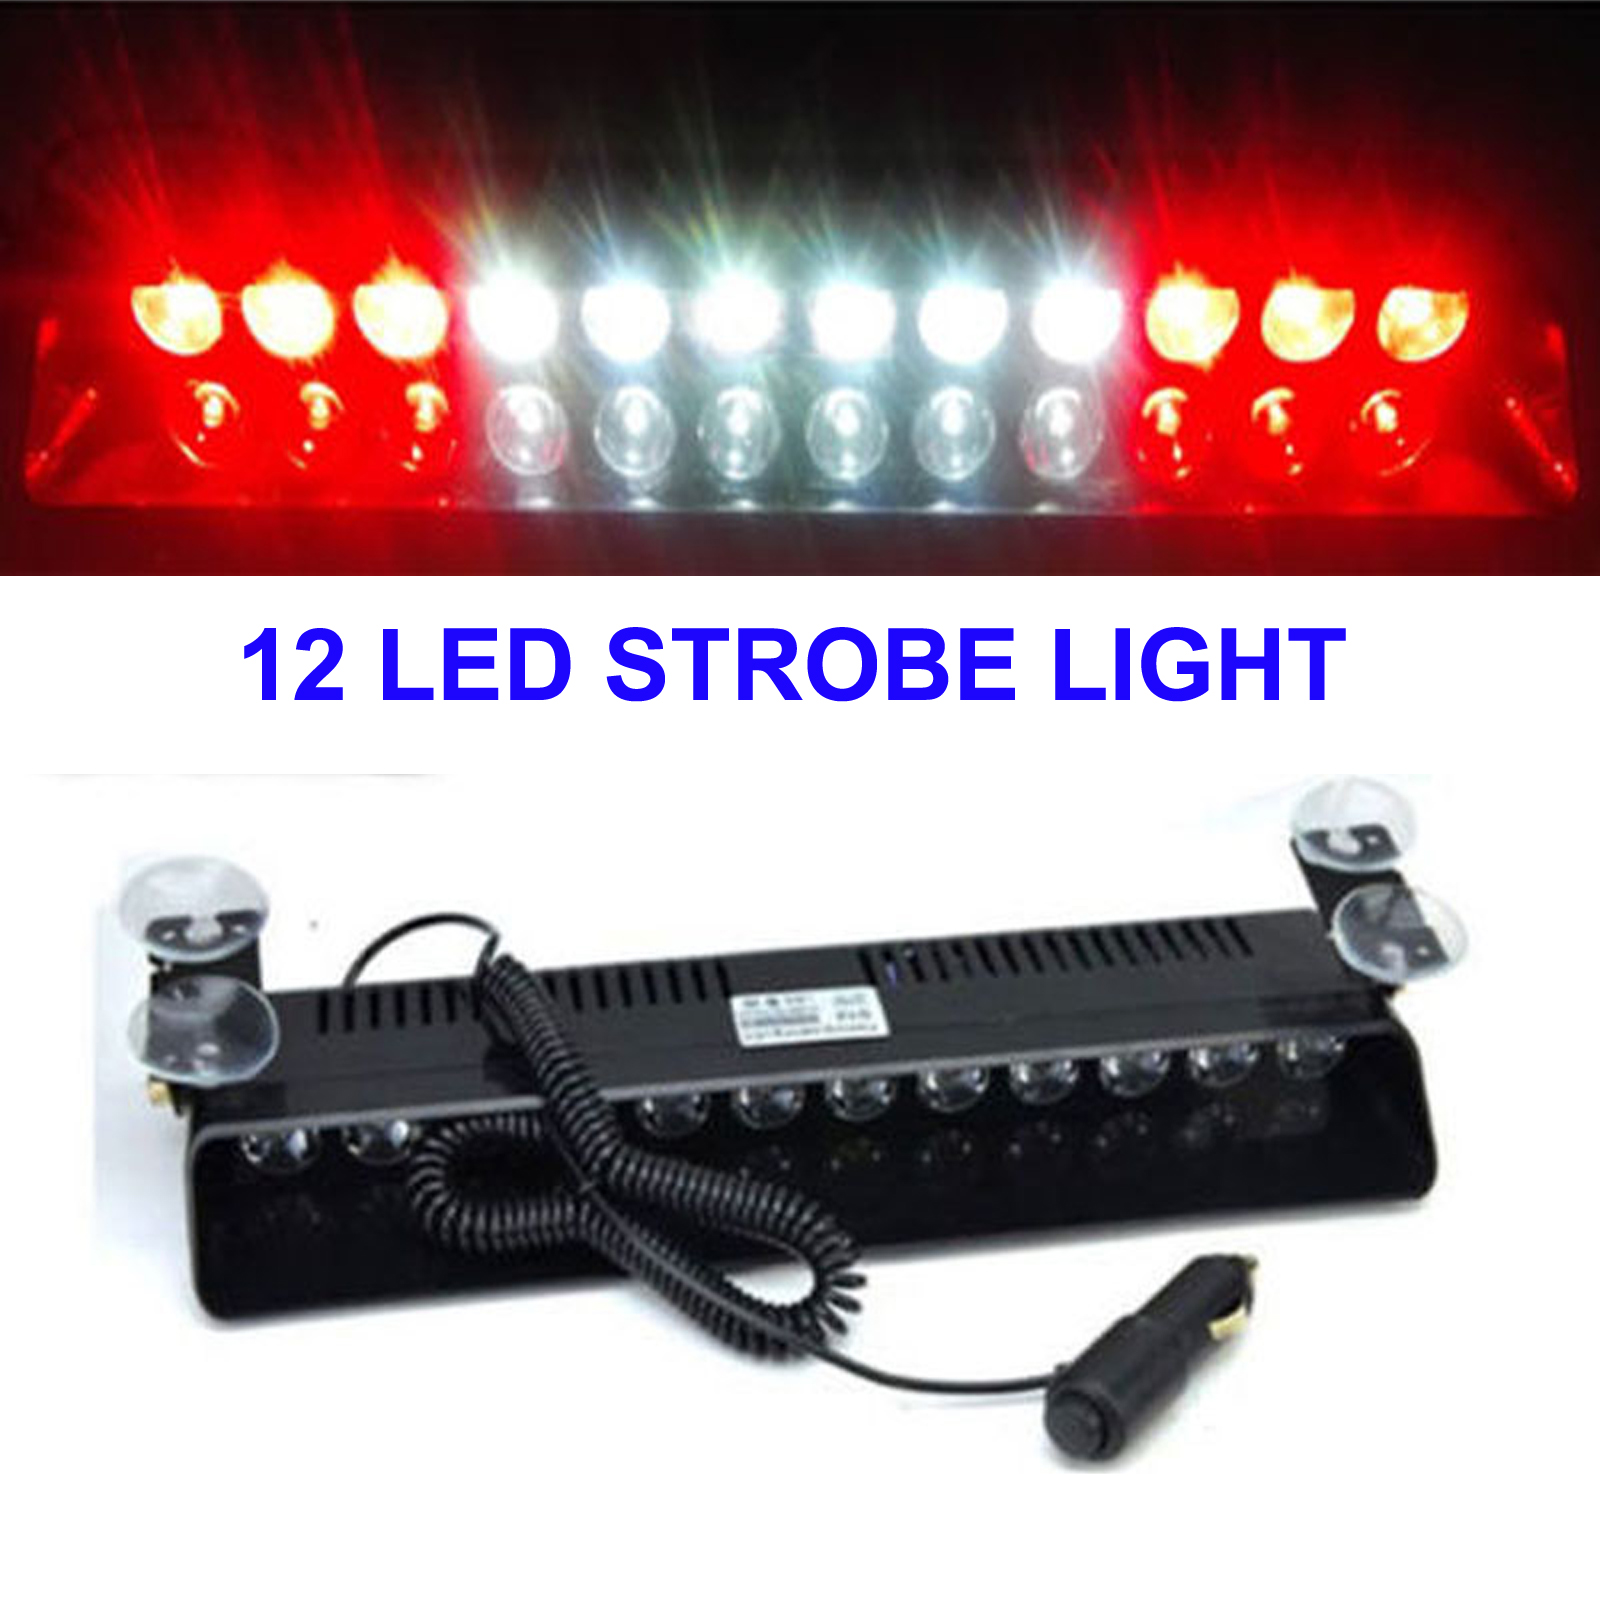 high strobe power light shocker p lights product lighting irc front led